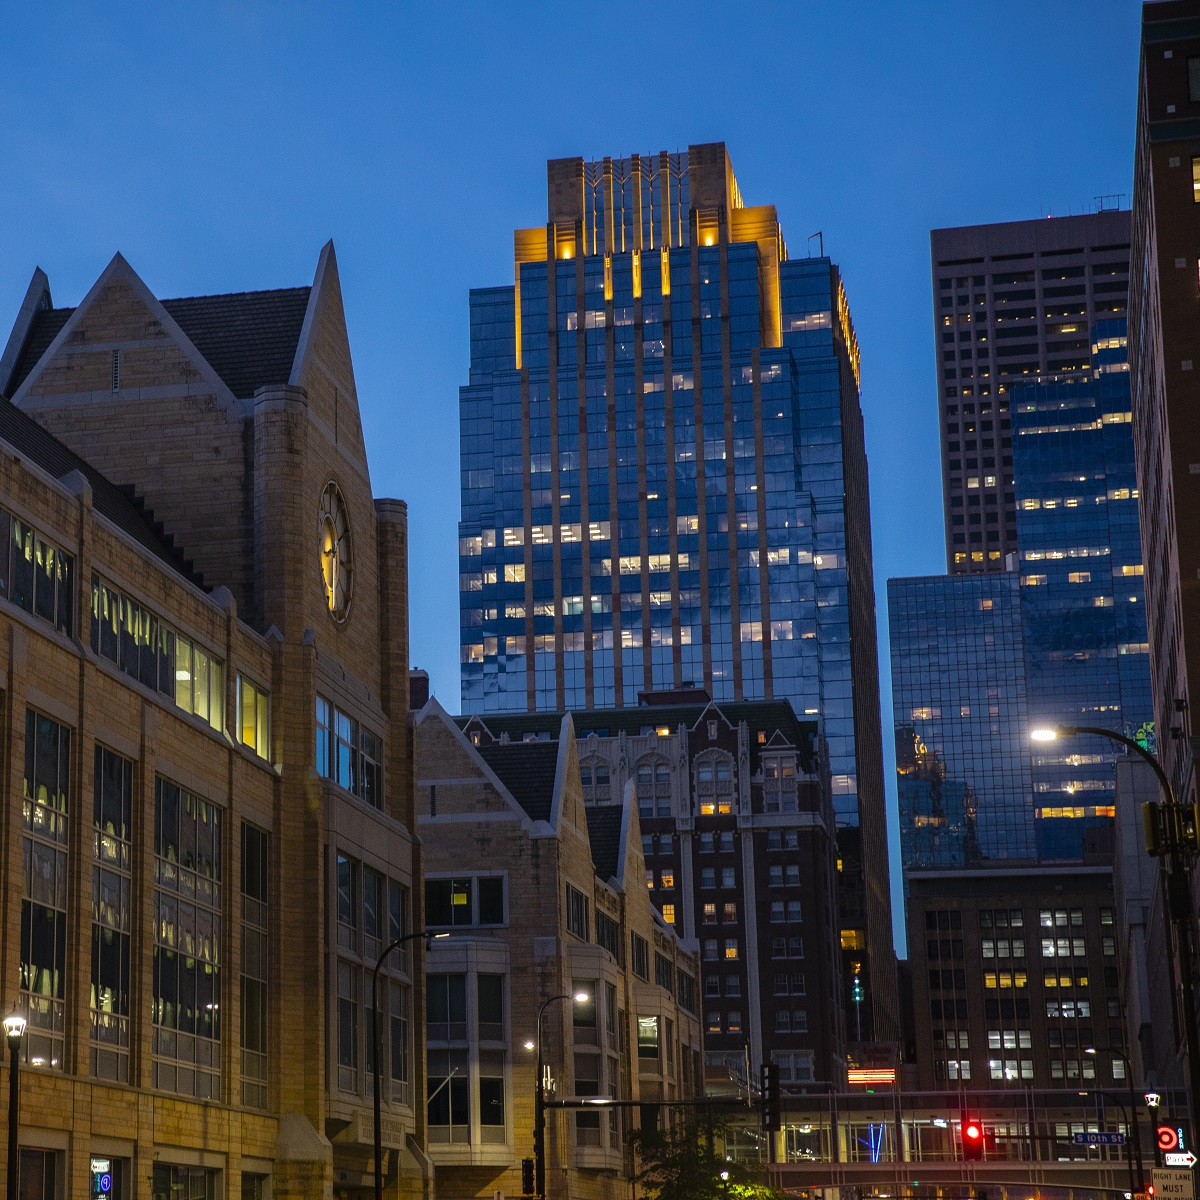 A nighttime photo of the exterior of the St. Thomas campus located in downtown Minneapolis.